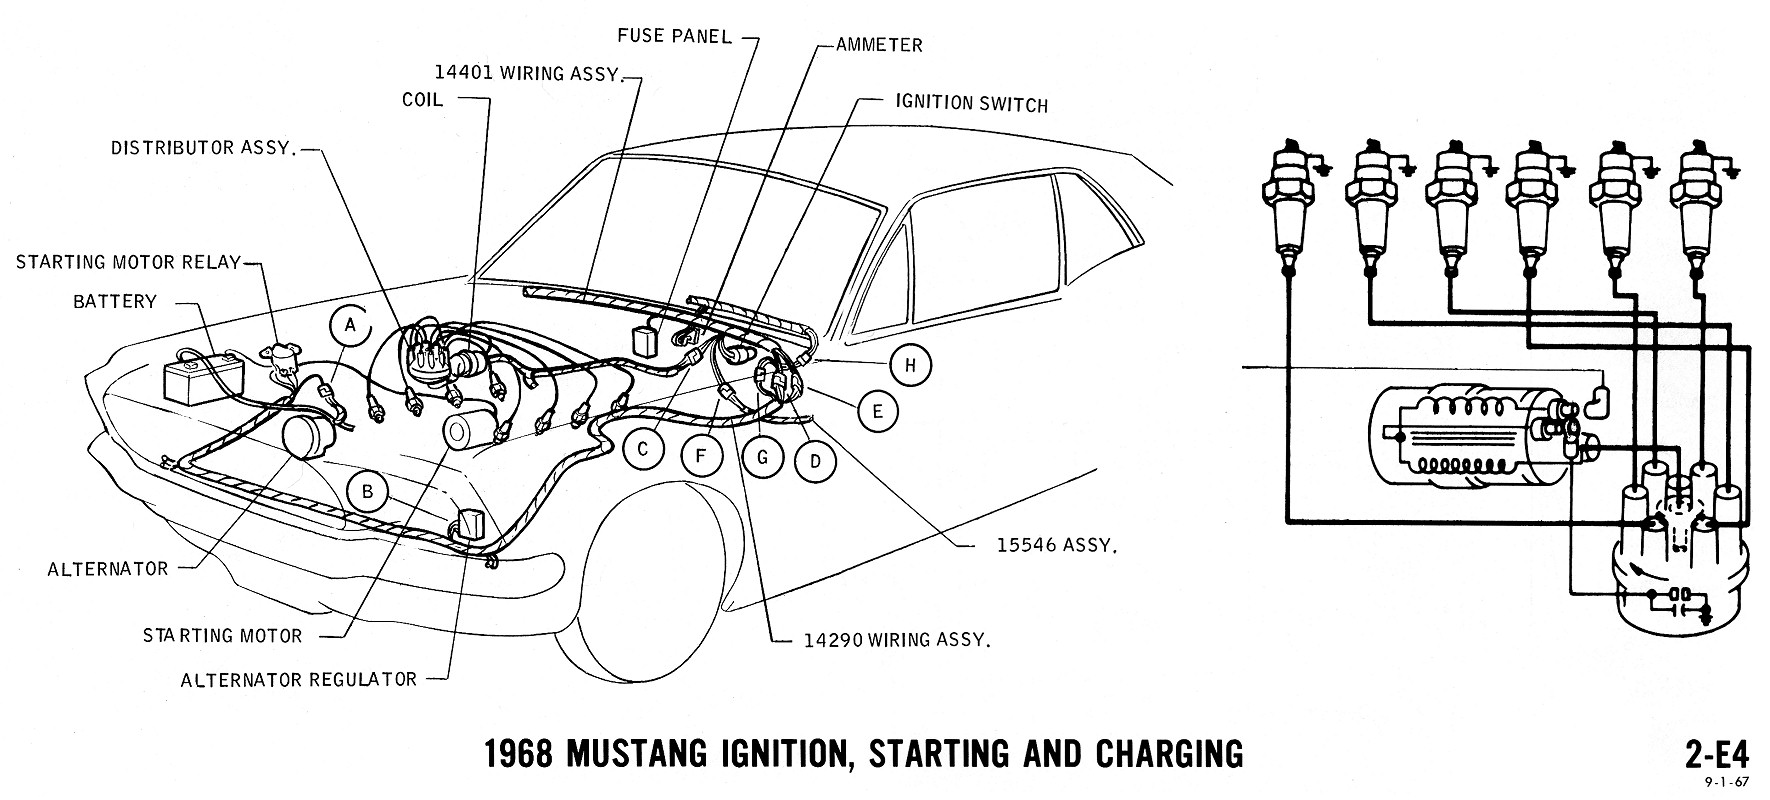 1968 mustang wiring diagram ignition starting charging 2 1968 mustang wiring diagrams and vacuum schematics average joe 1967 mustang ignition wiring diagram at soozxer.org